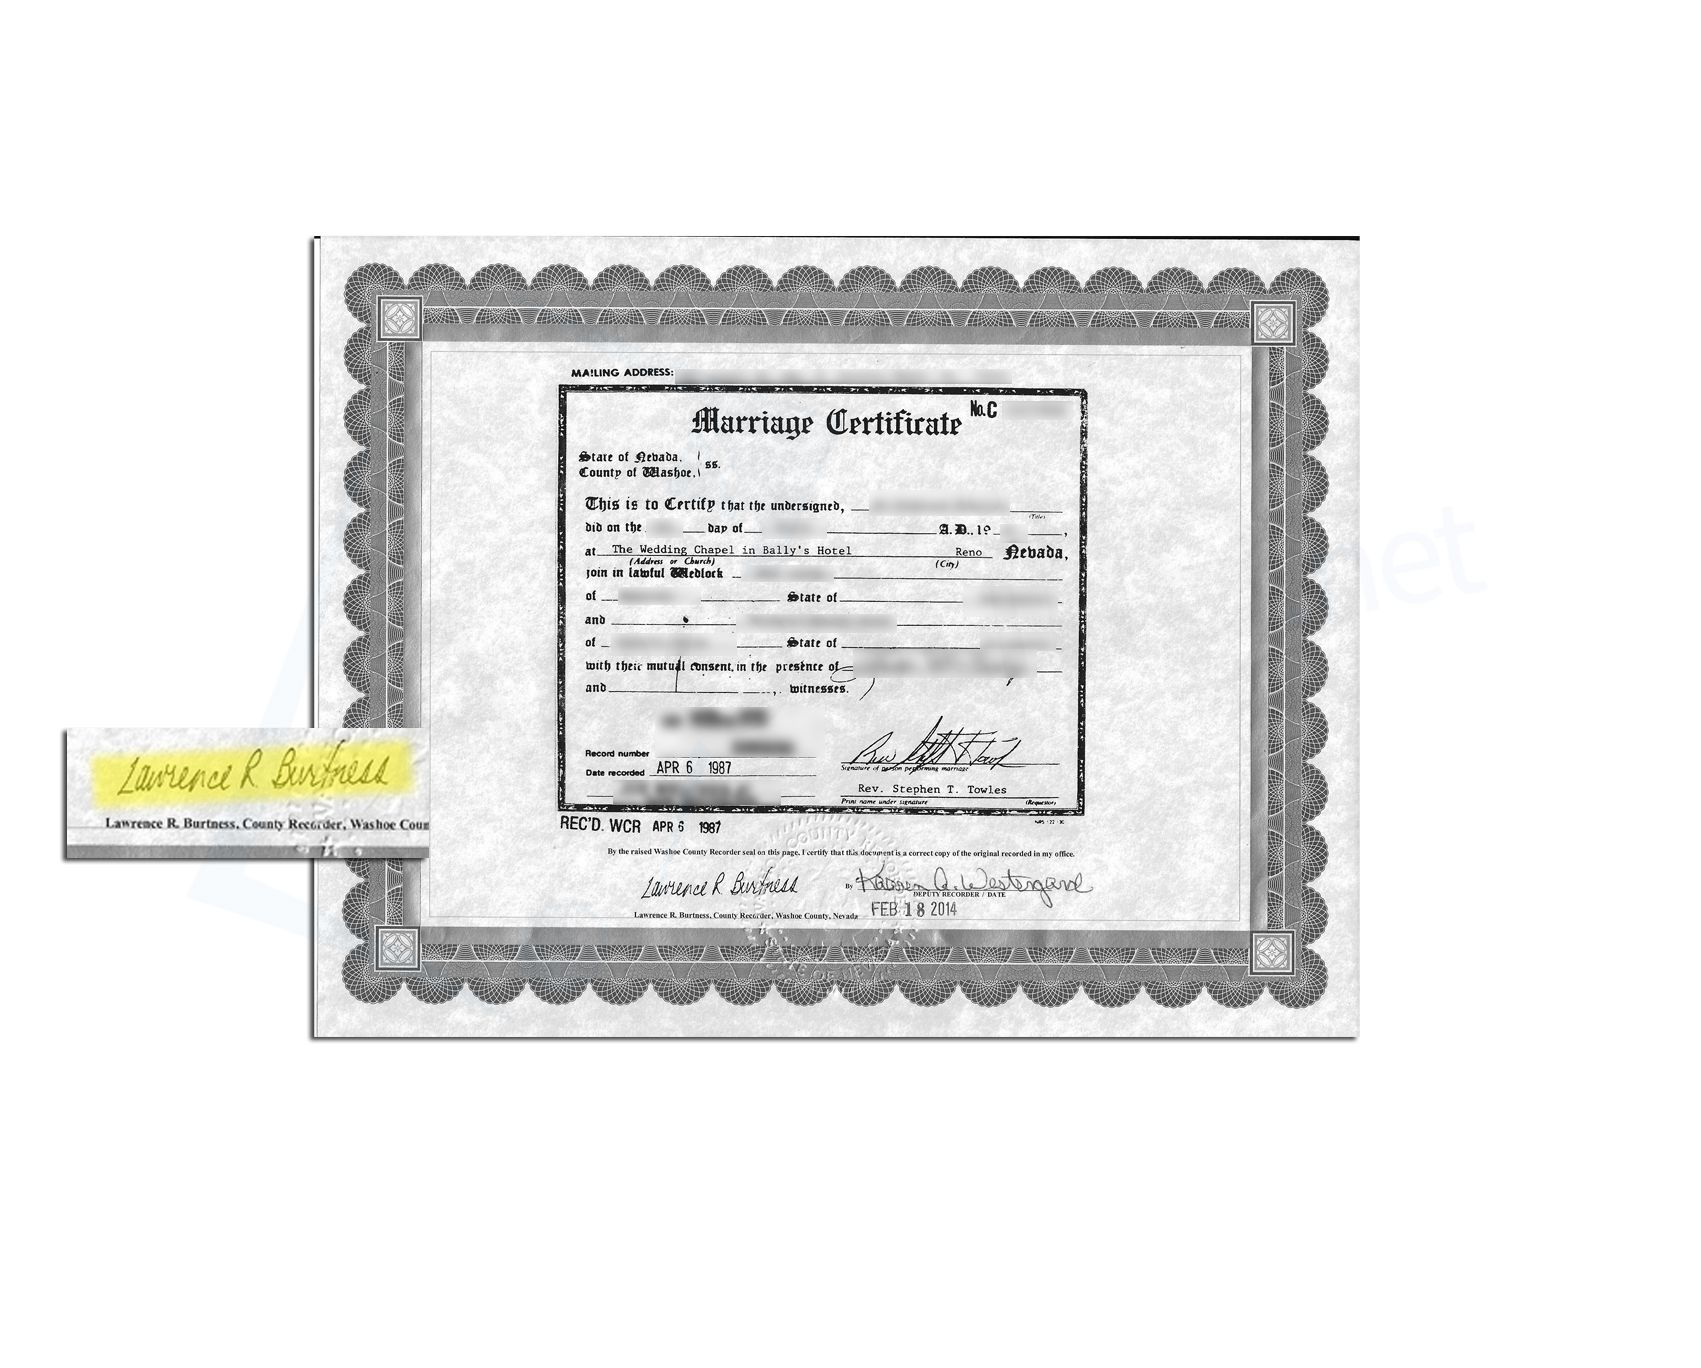 State Of Nevada Marriage Certificate Issued By Lawrence R Burtness